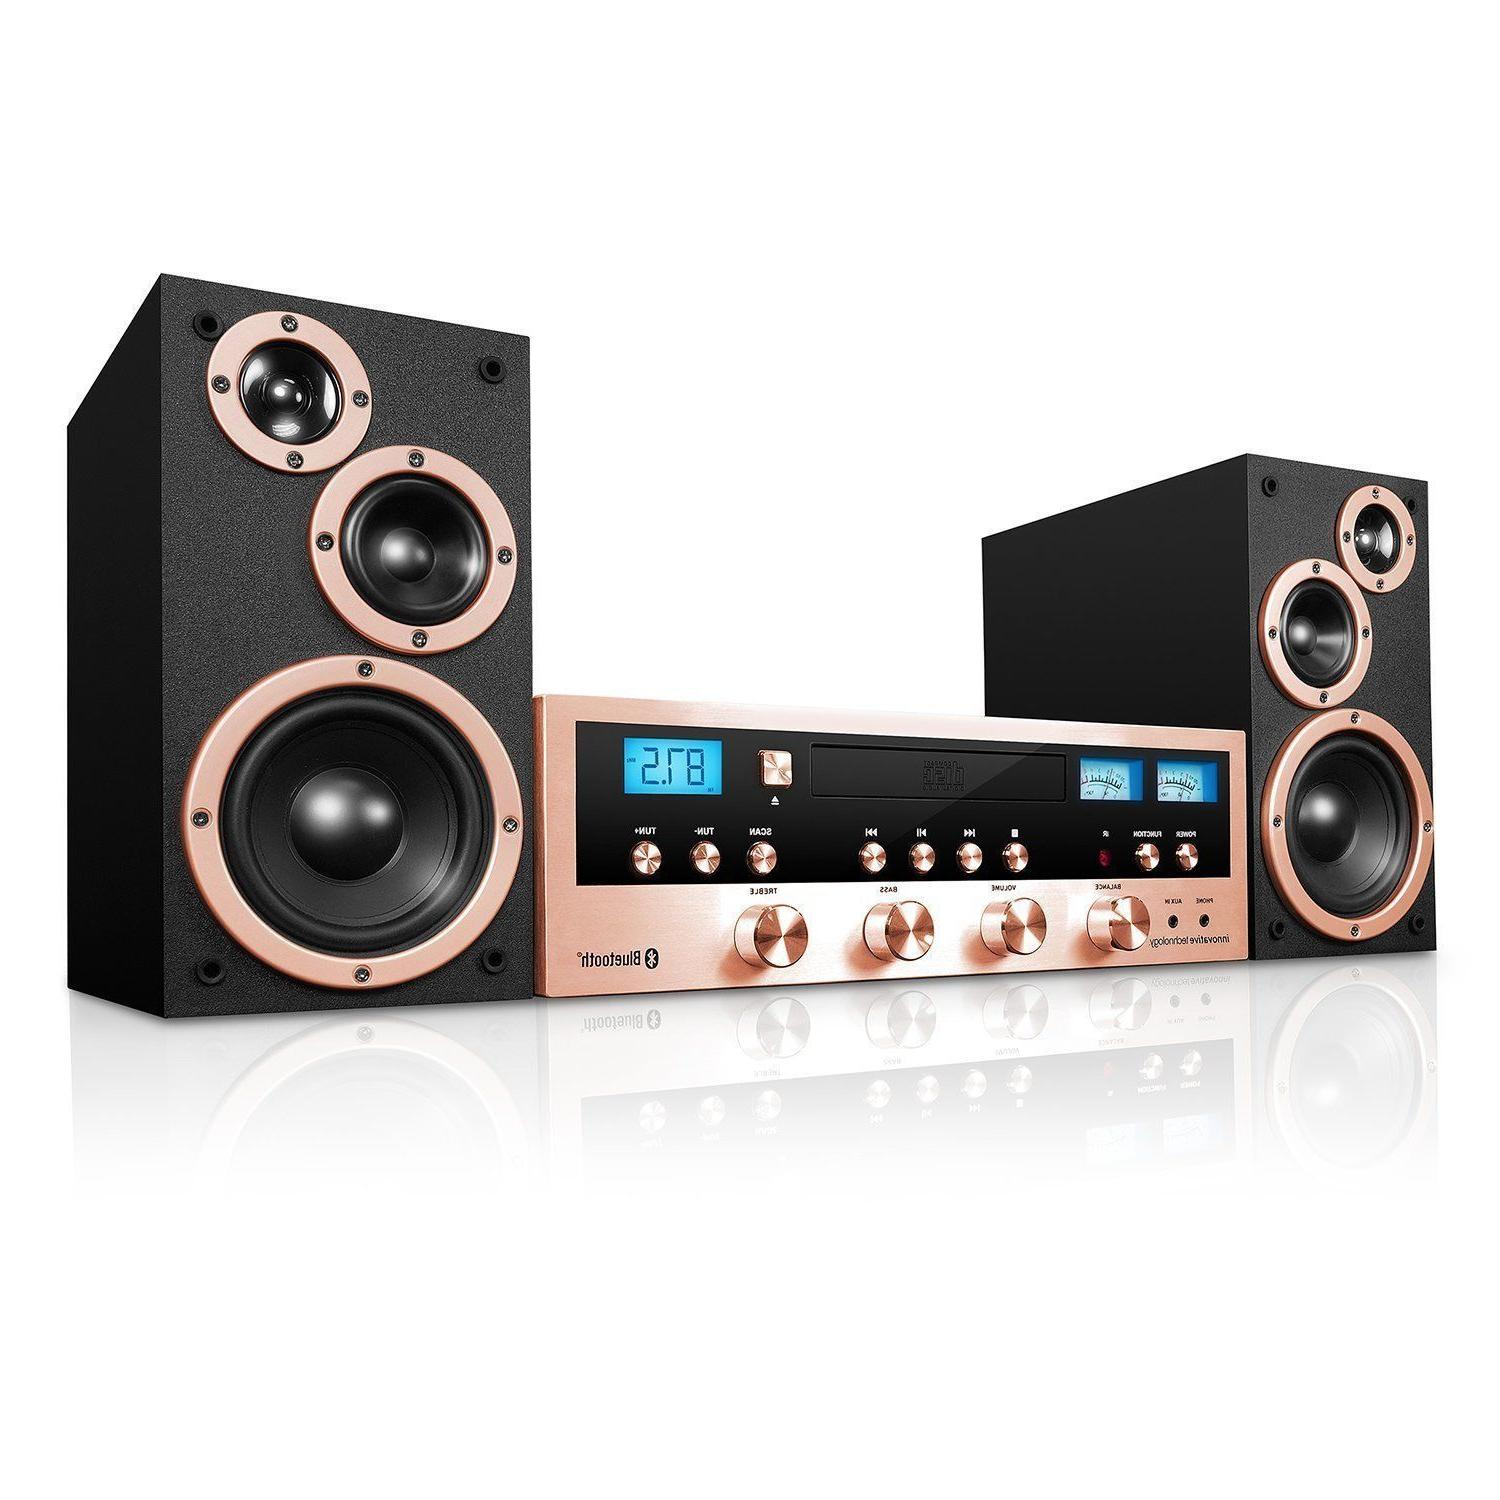 itcds 5000 rsg limited edition blt stereo